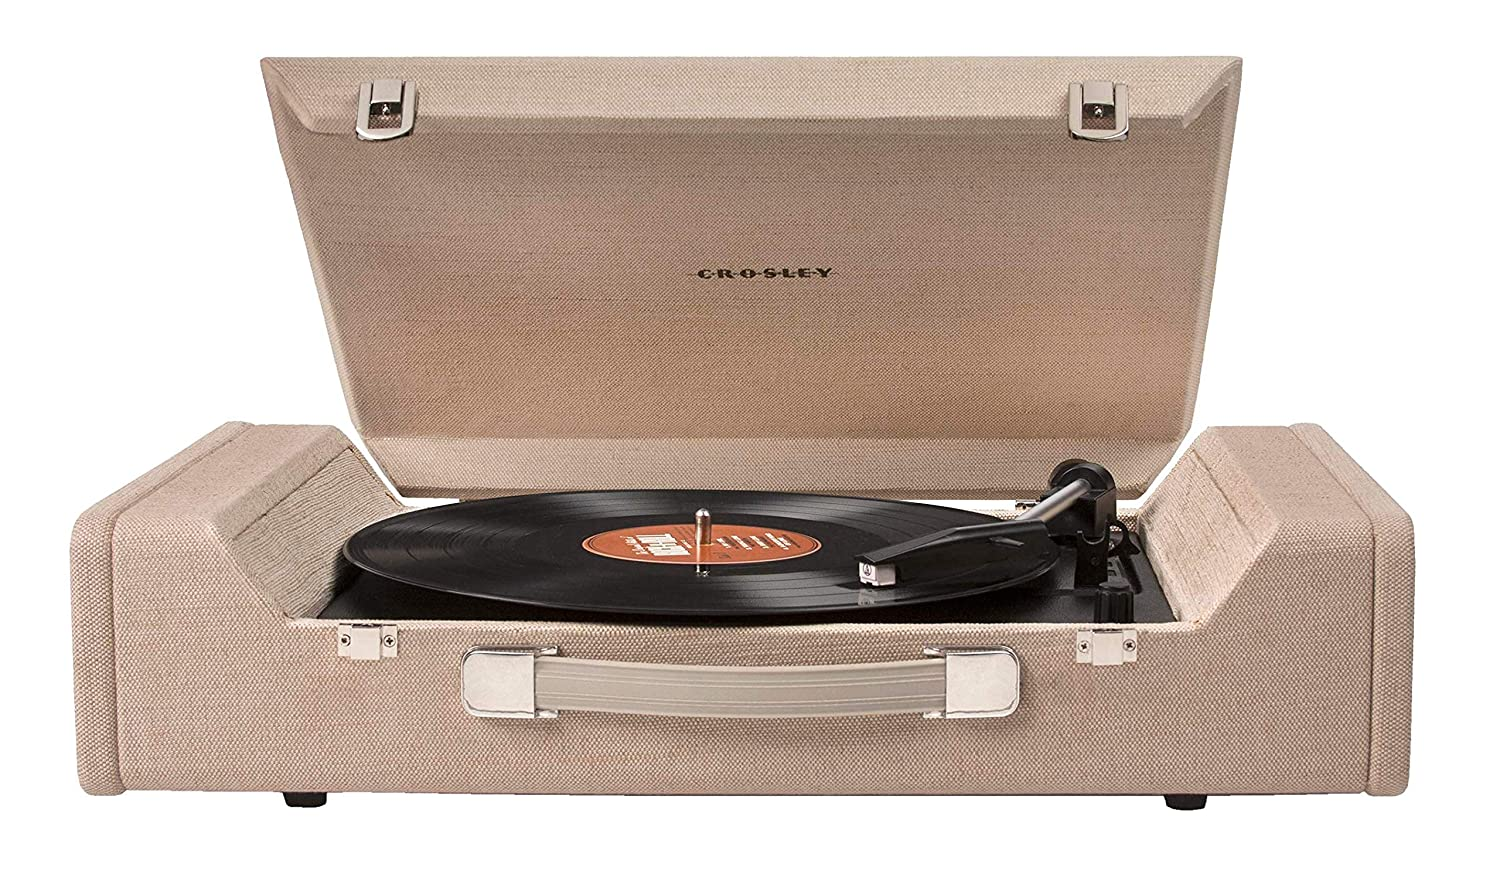 Crosley Nomad Portable USB Turntable with Software for Ripping & Editing Audio, Brown